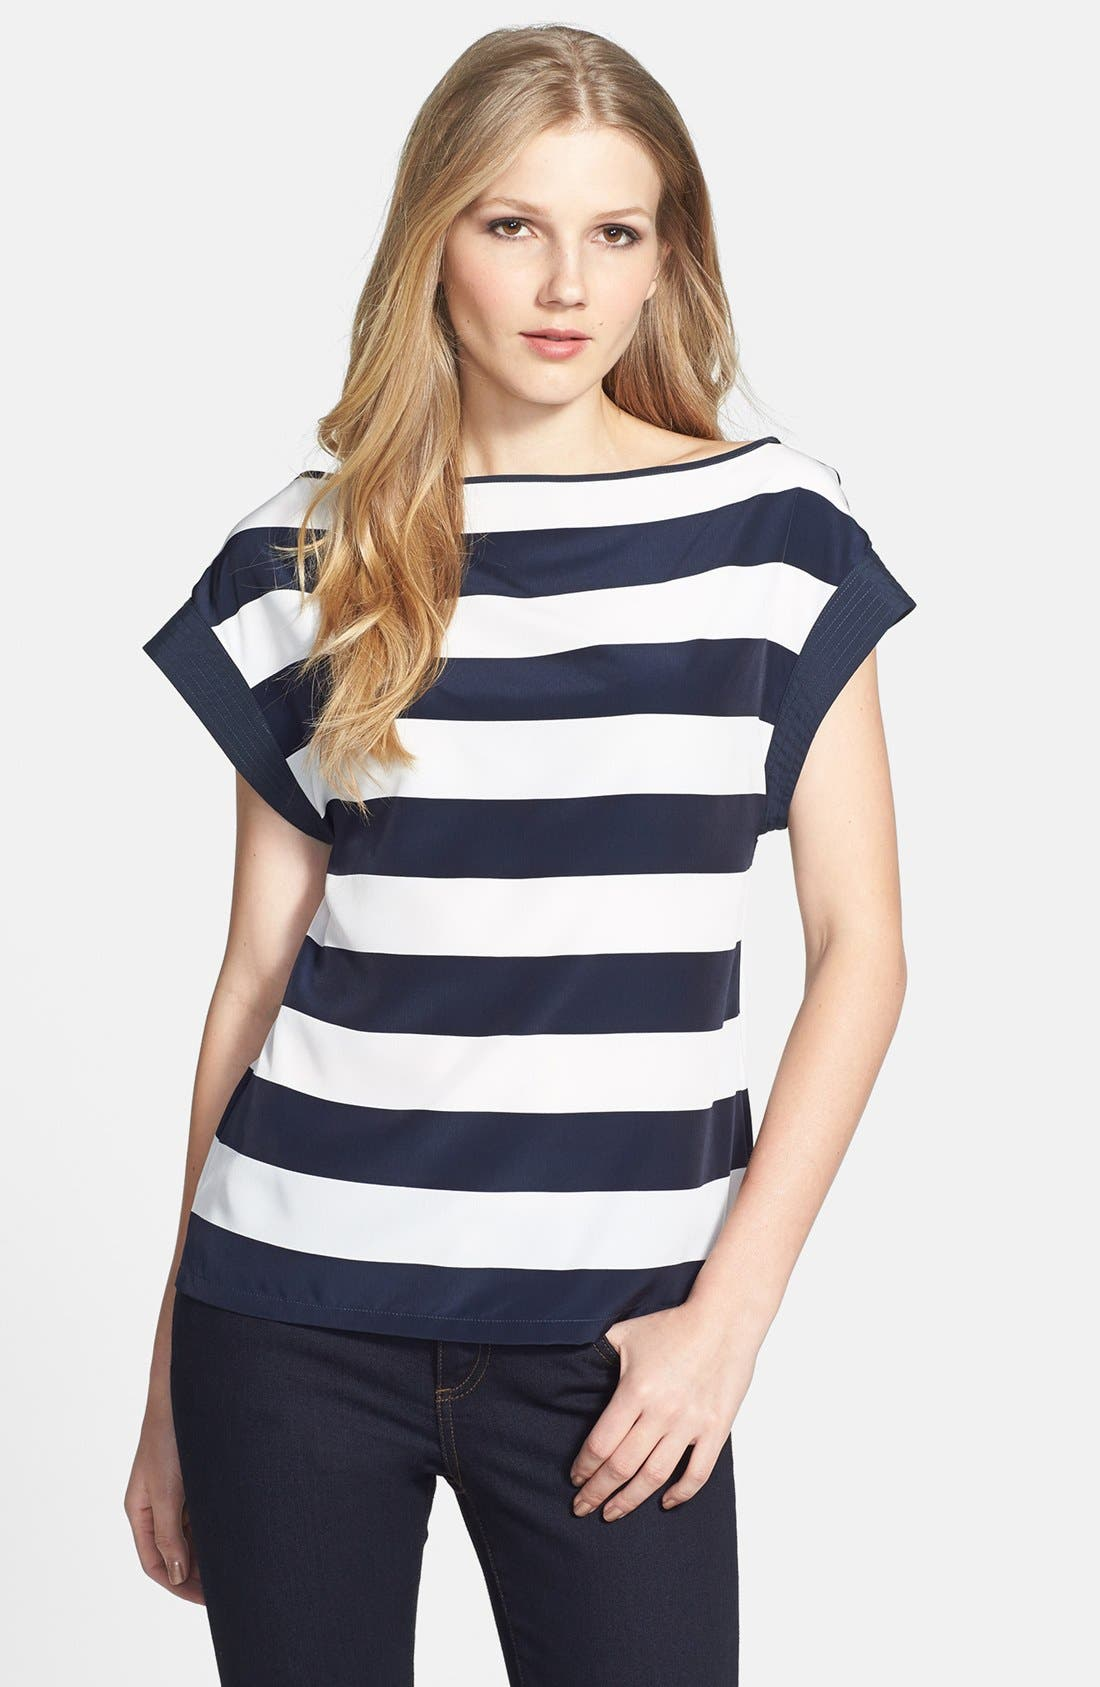 Main Image - Vince Camuto 'Yacht Stripe' Boatneck Blouse (Regular & Petite)